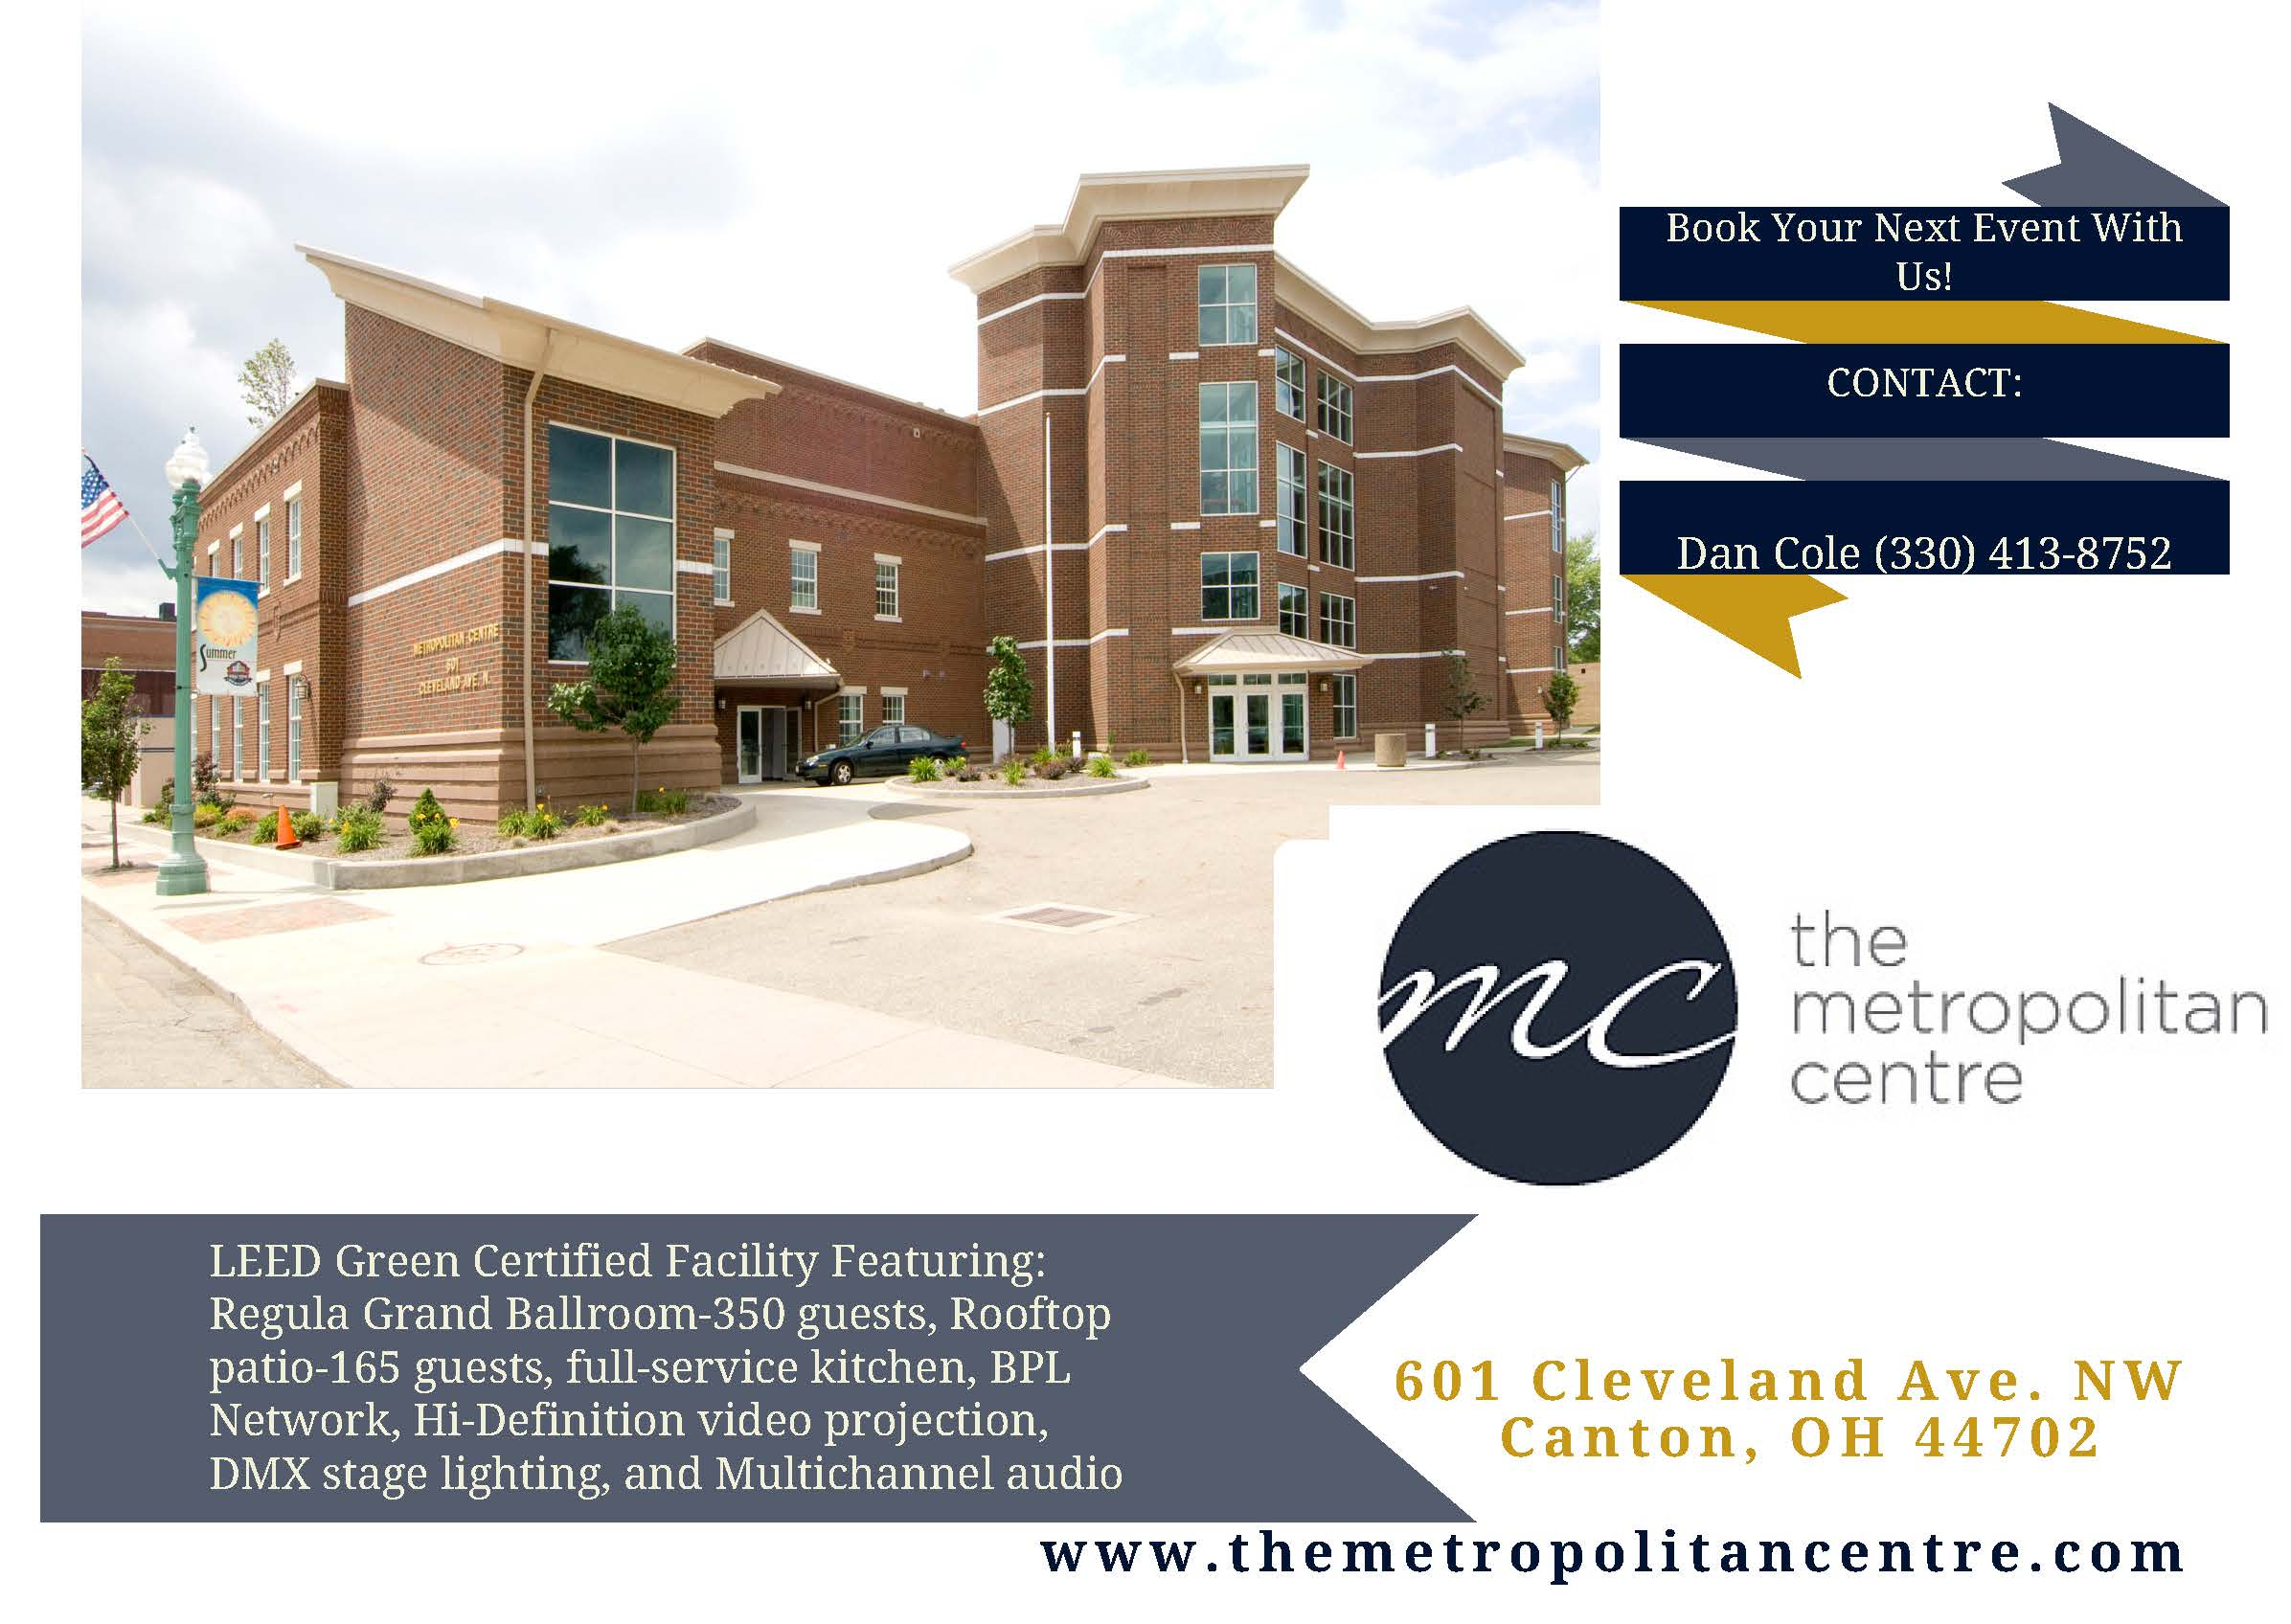 The Metropolitan Centre Launches NEW Website and Social Media